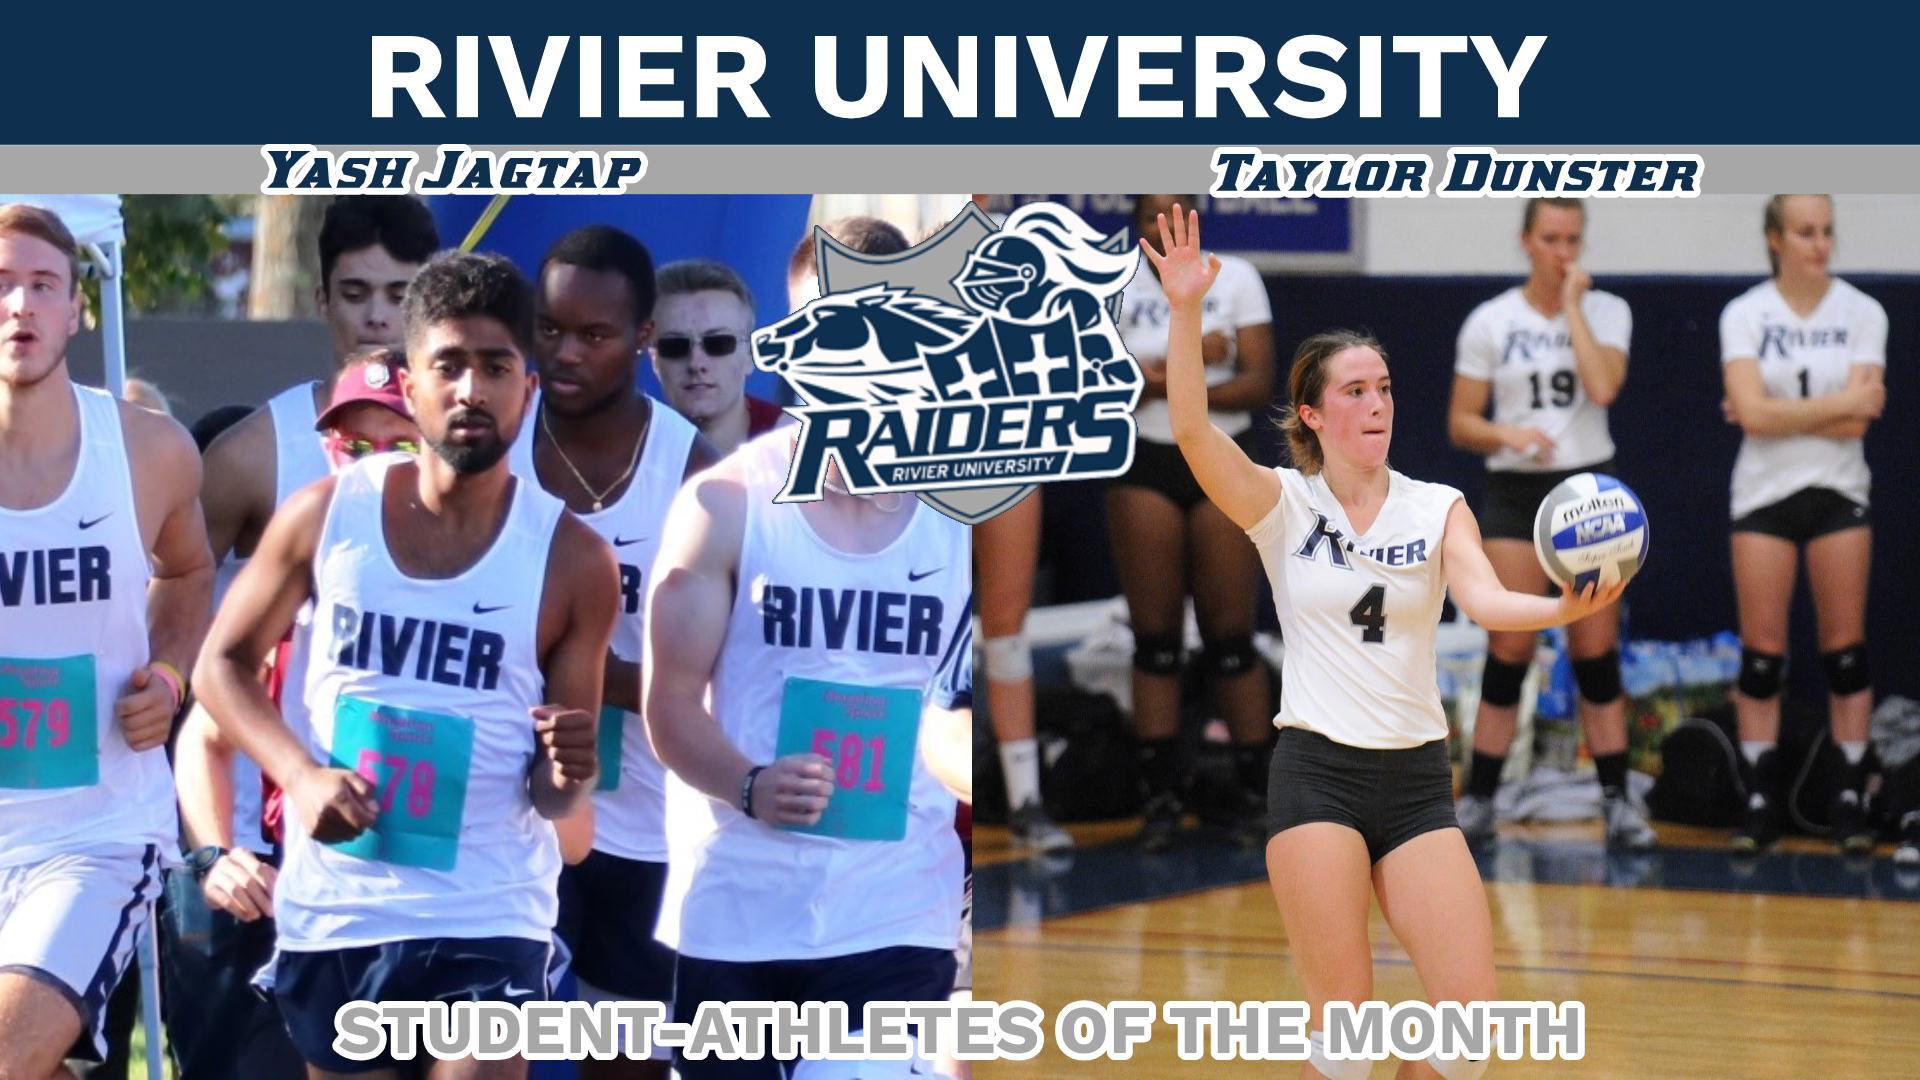 Dunster, Jagtap named Student-Athletes of the Month